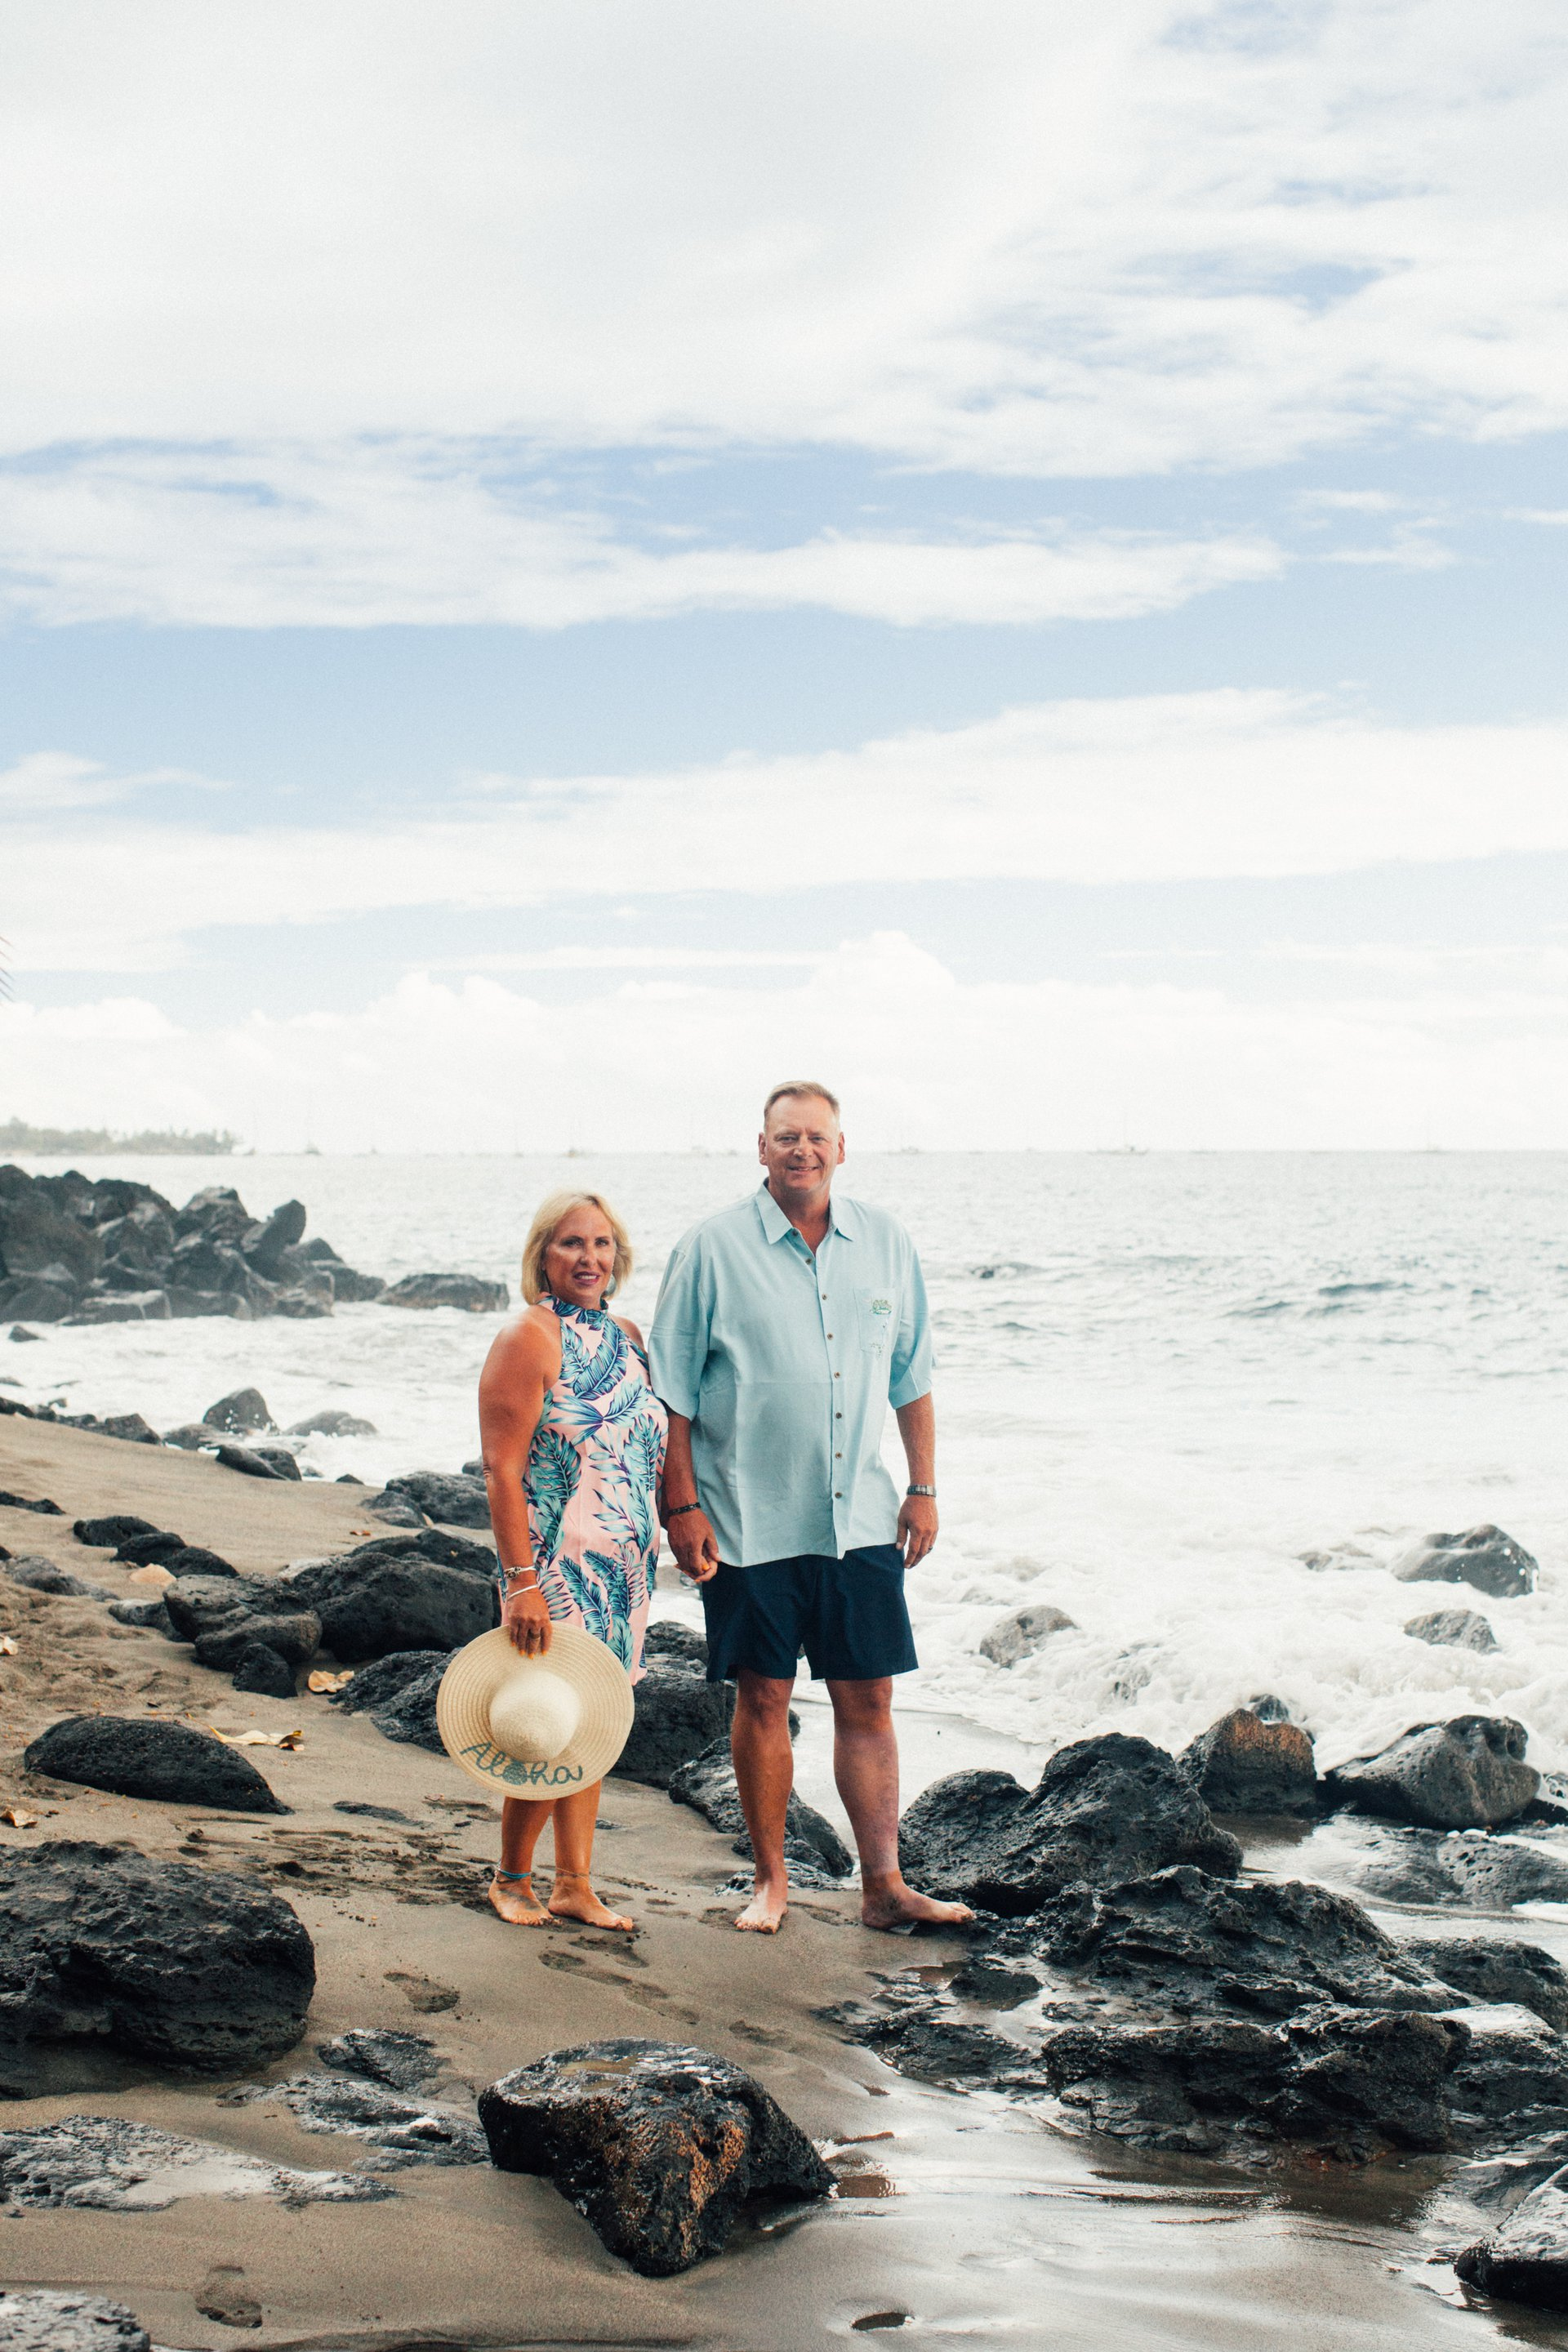 Flytographer Travel Story - Our happy place